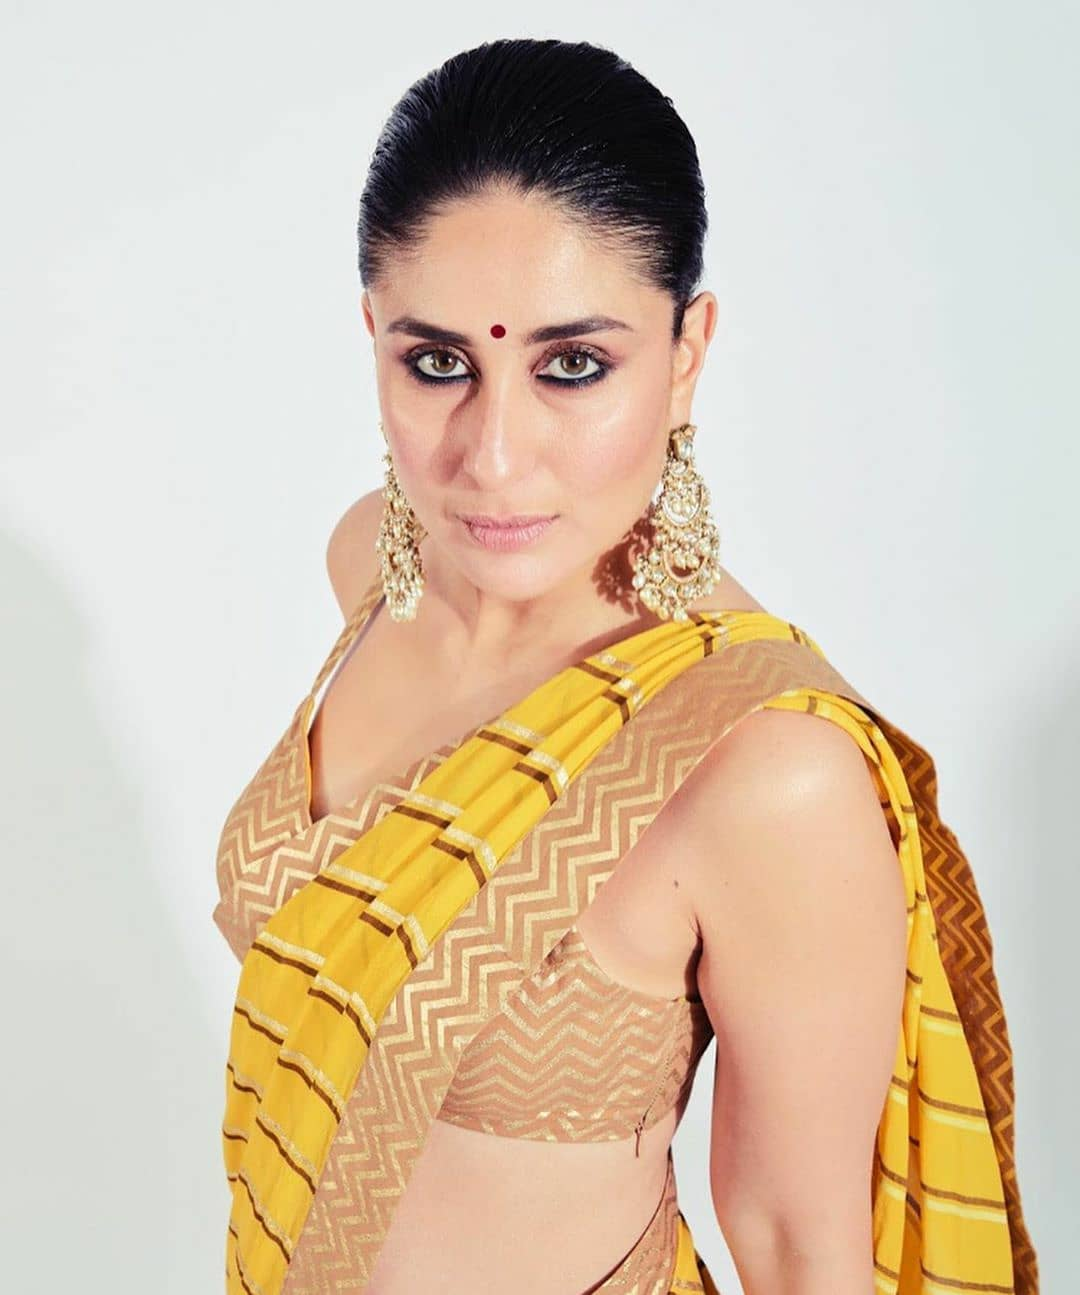 Kareena Kapoor's 20 Years in Bollywood: How She Remained on Top